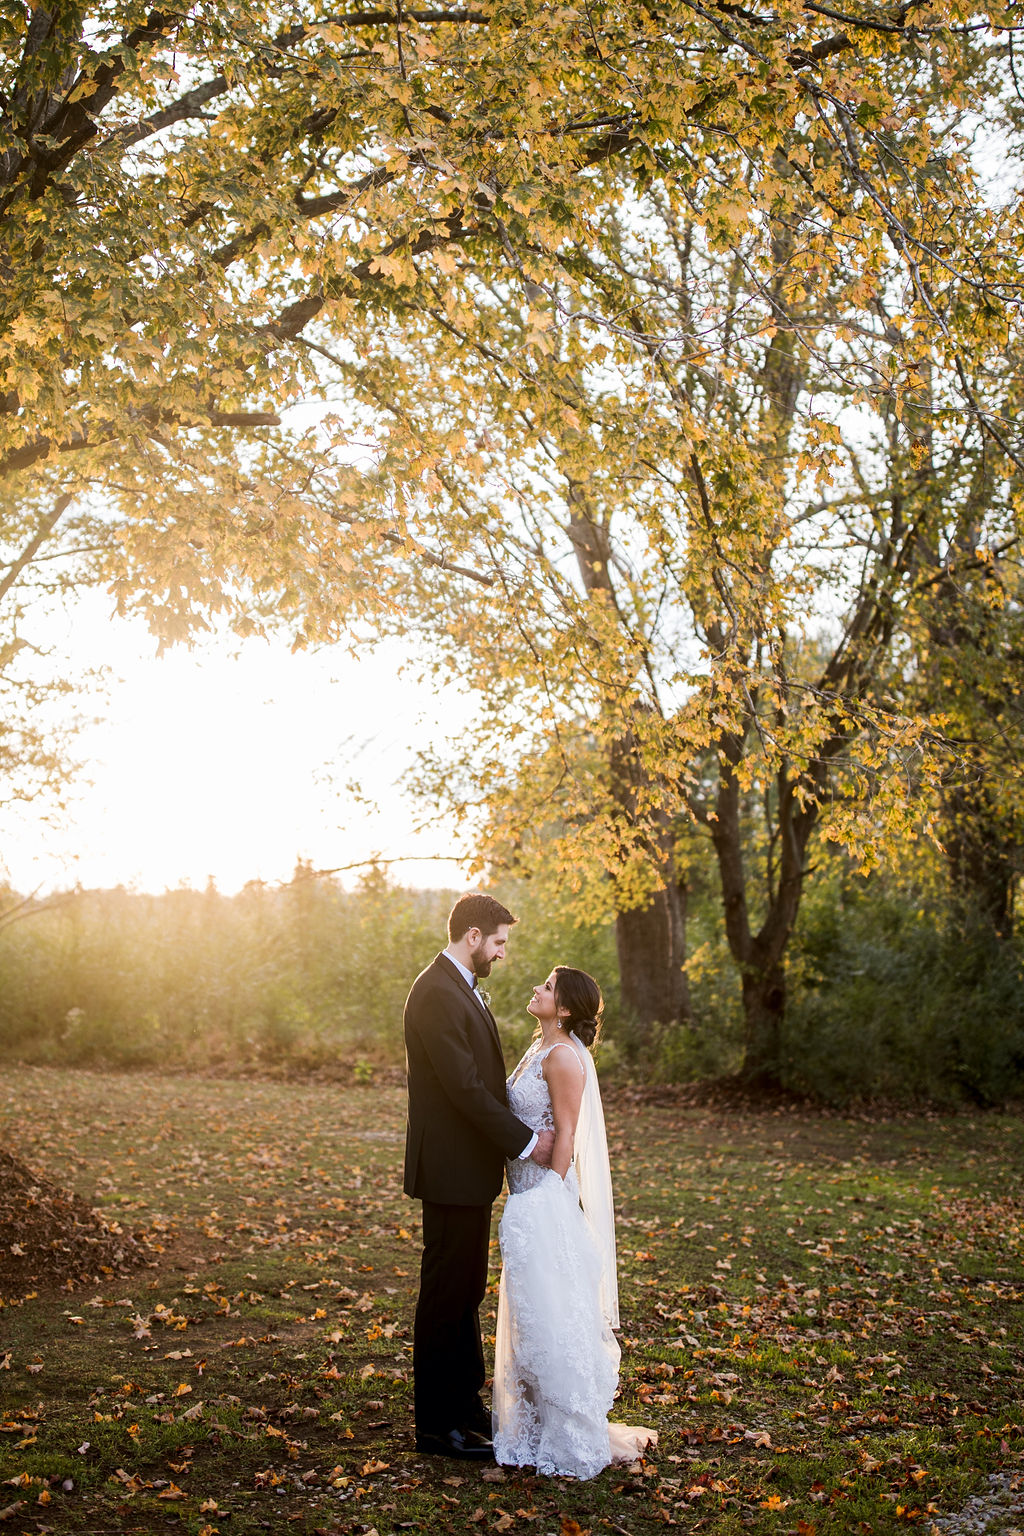 John Myers Photography and Videography featured on Nashville Bride Guide